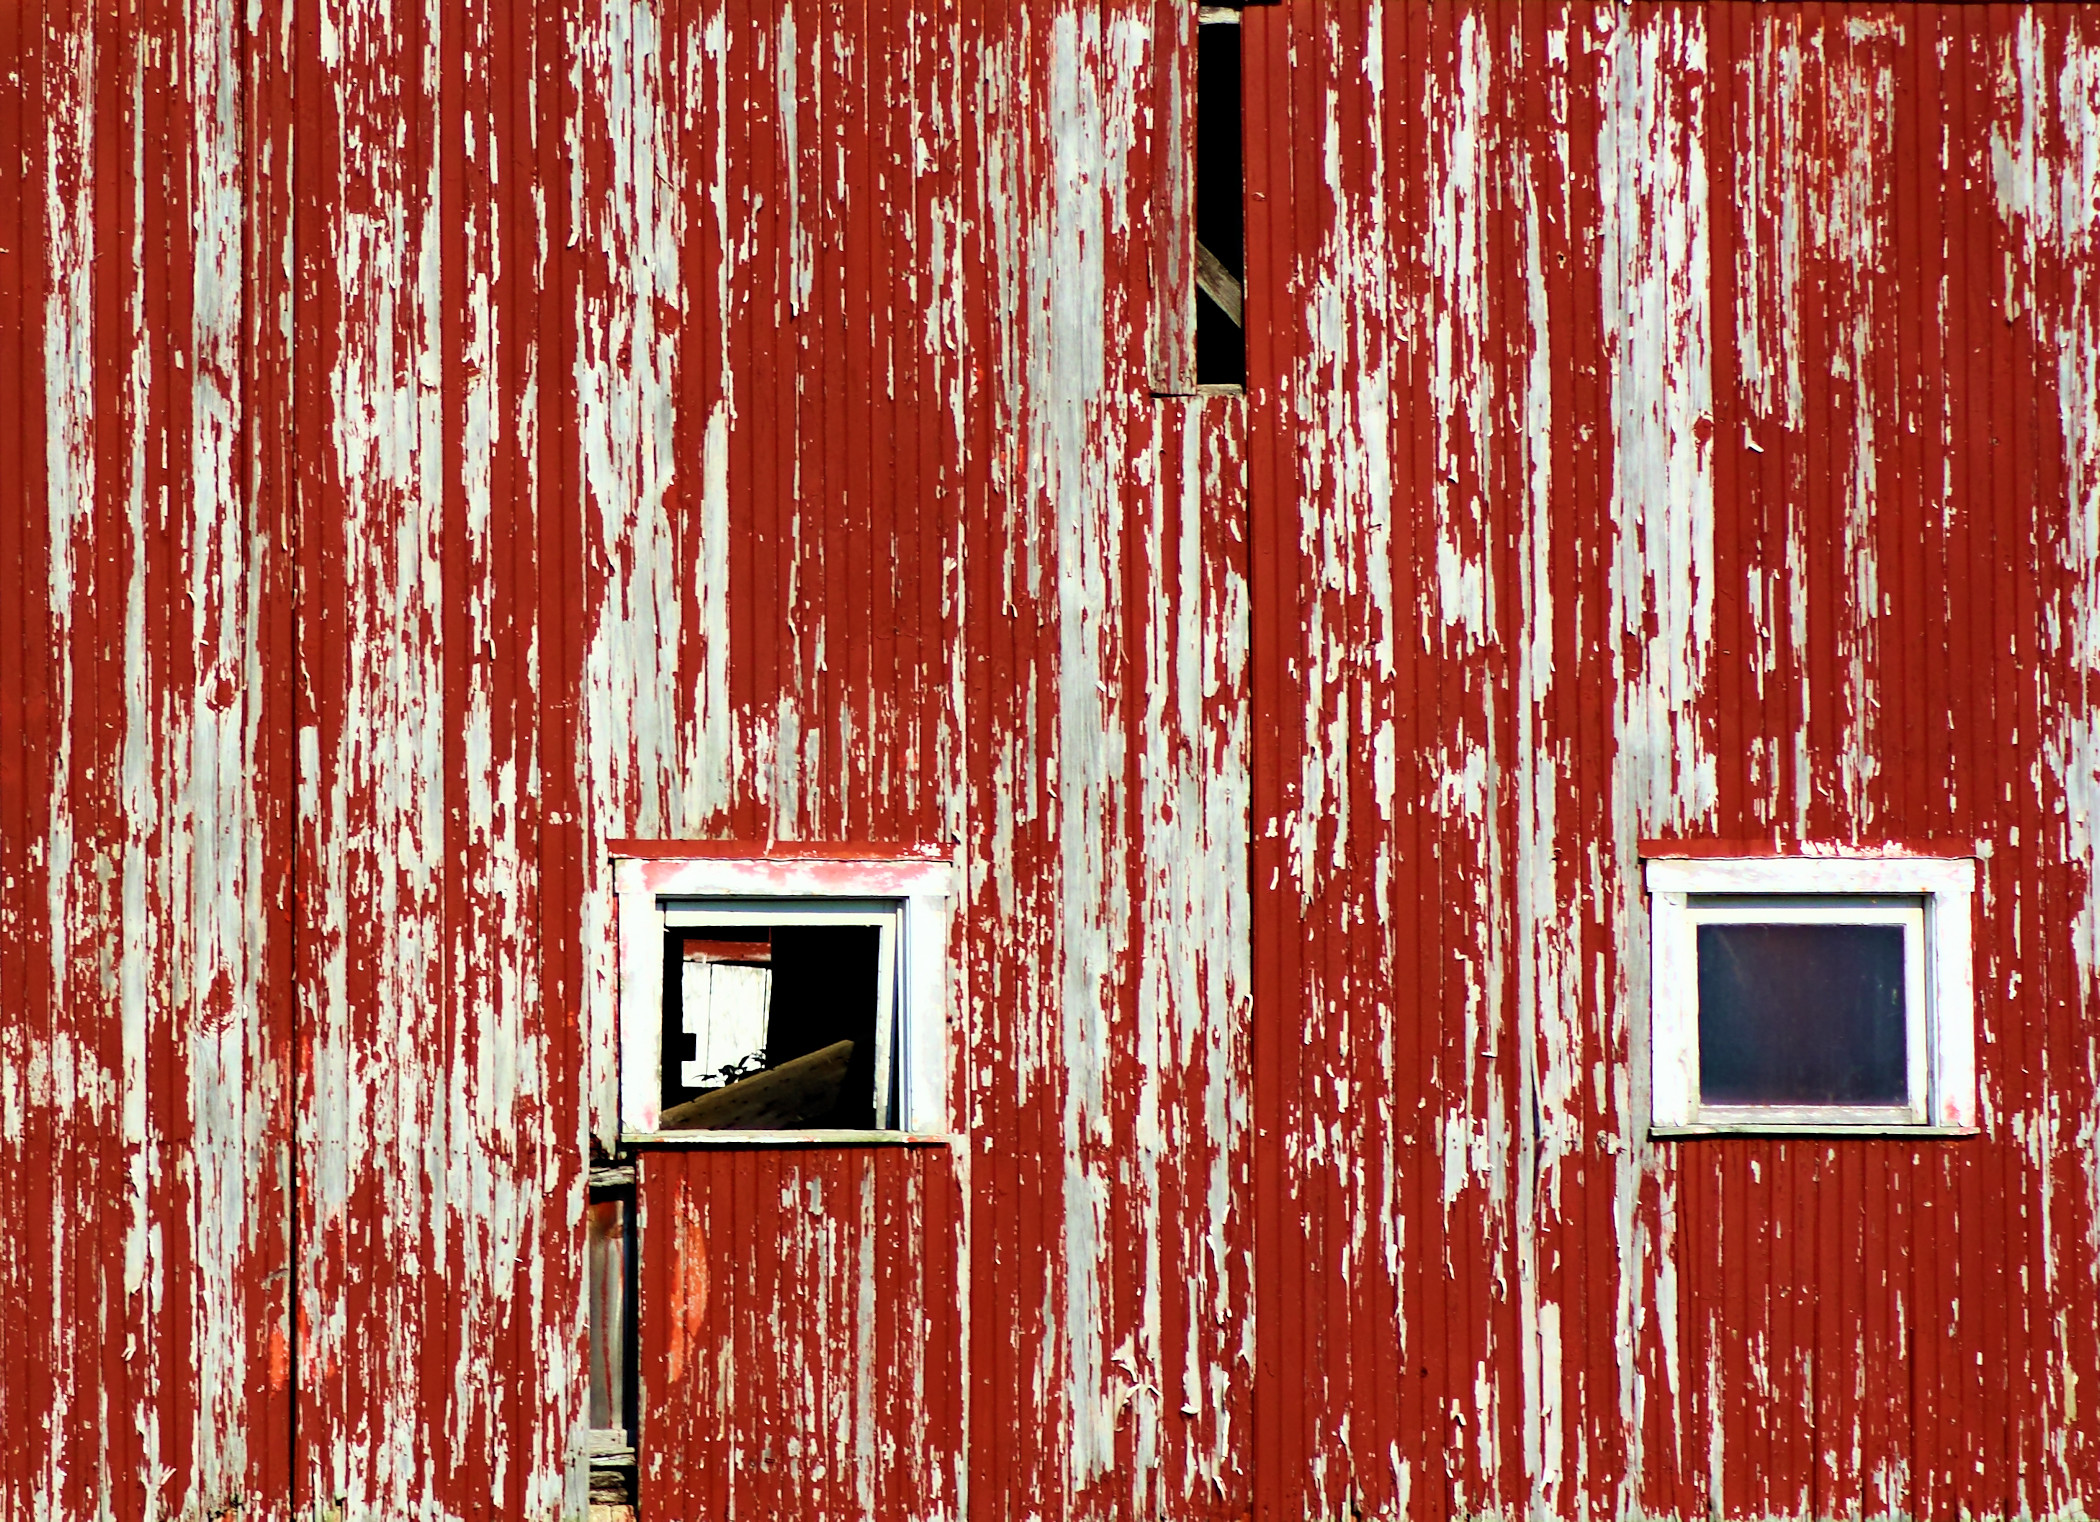 2100x1522 old red barn siding background needs painting with windows and missing